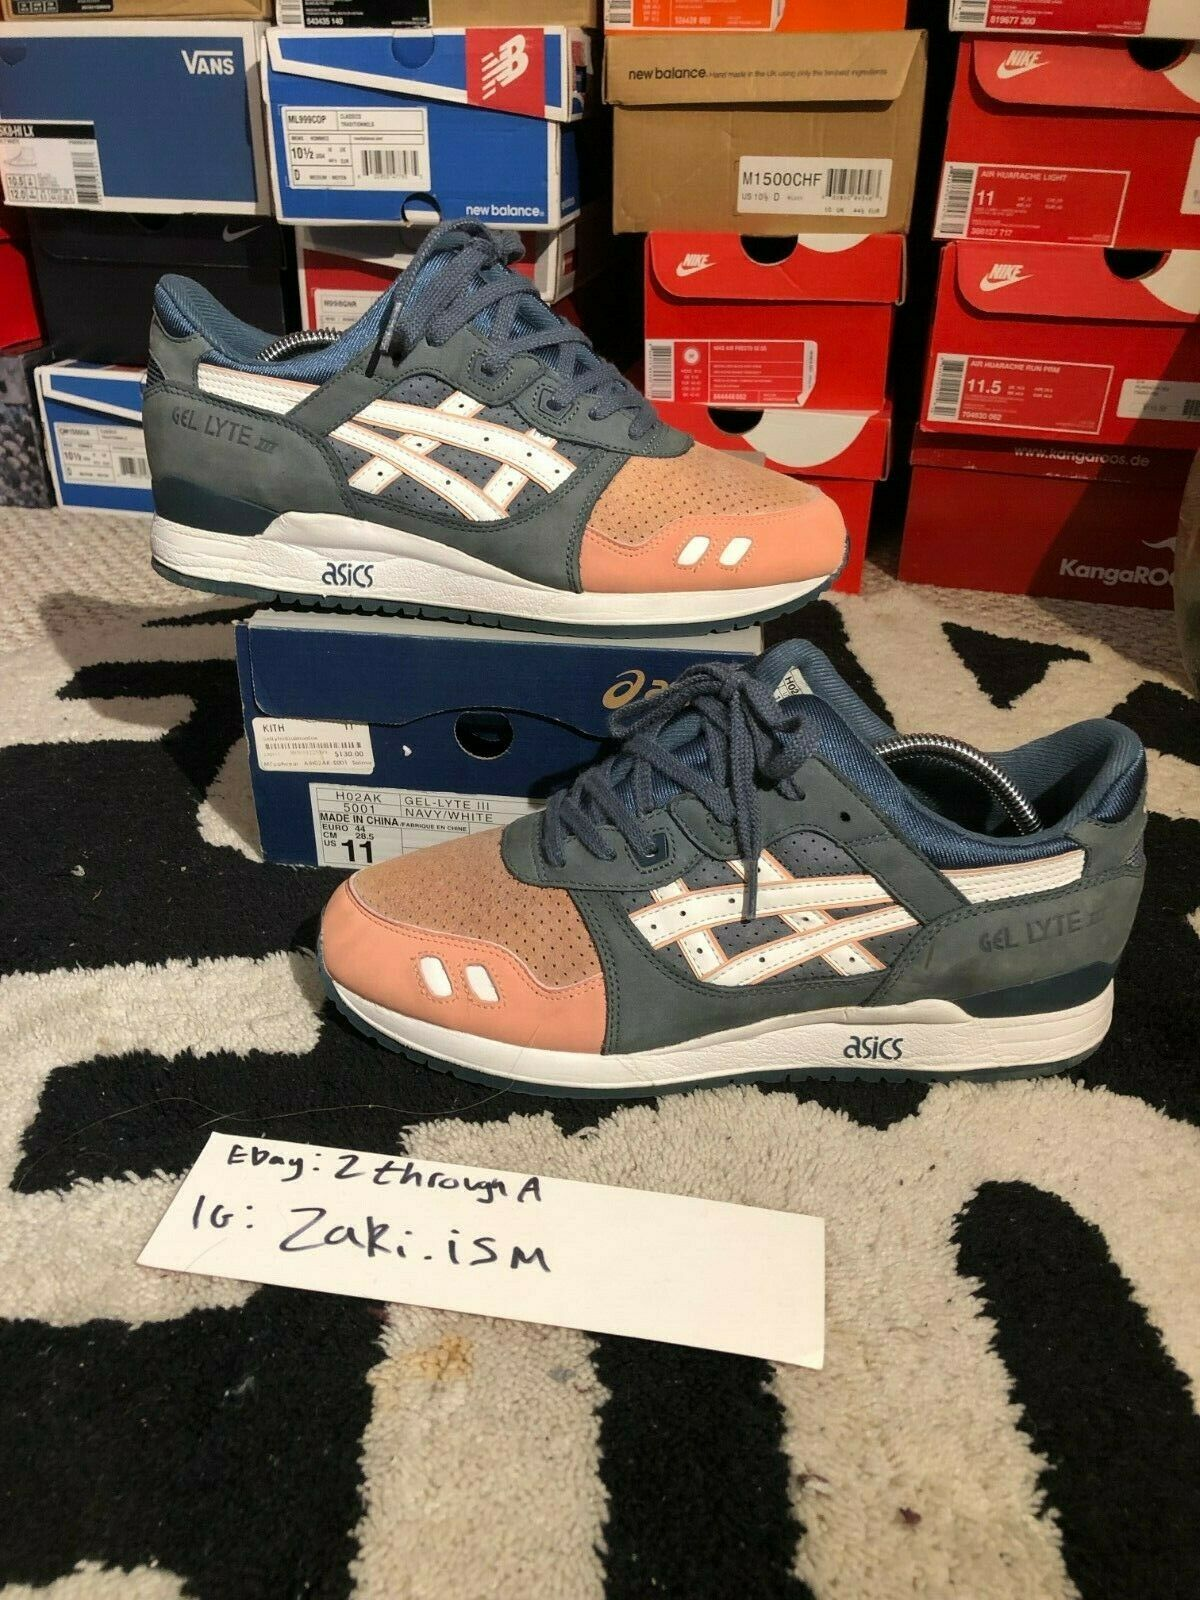 Asics x kith ronnie fieg gel lyte iii Salmon toe size 11 OG all